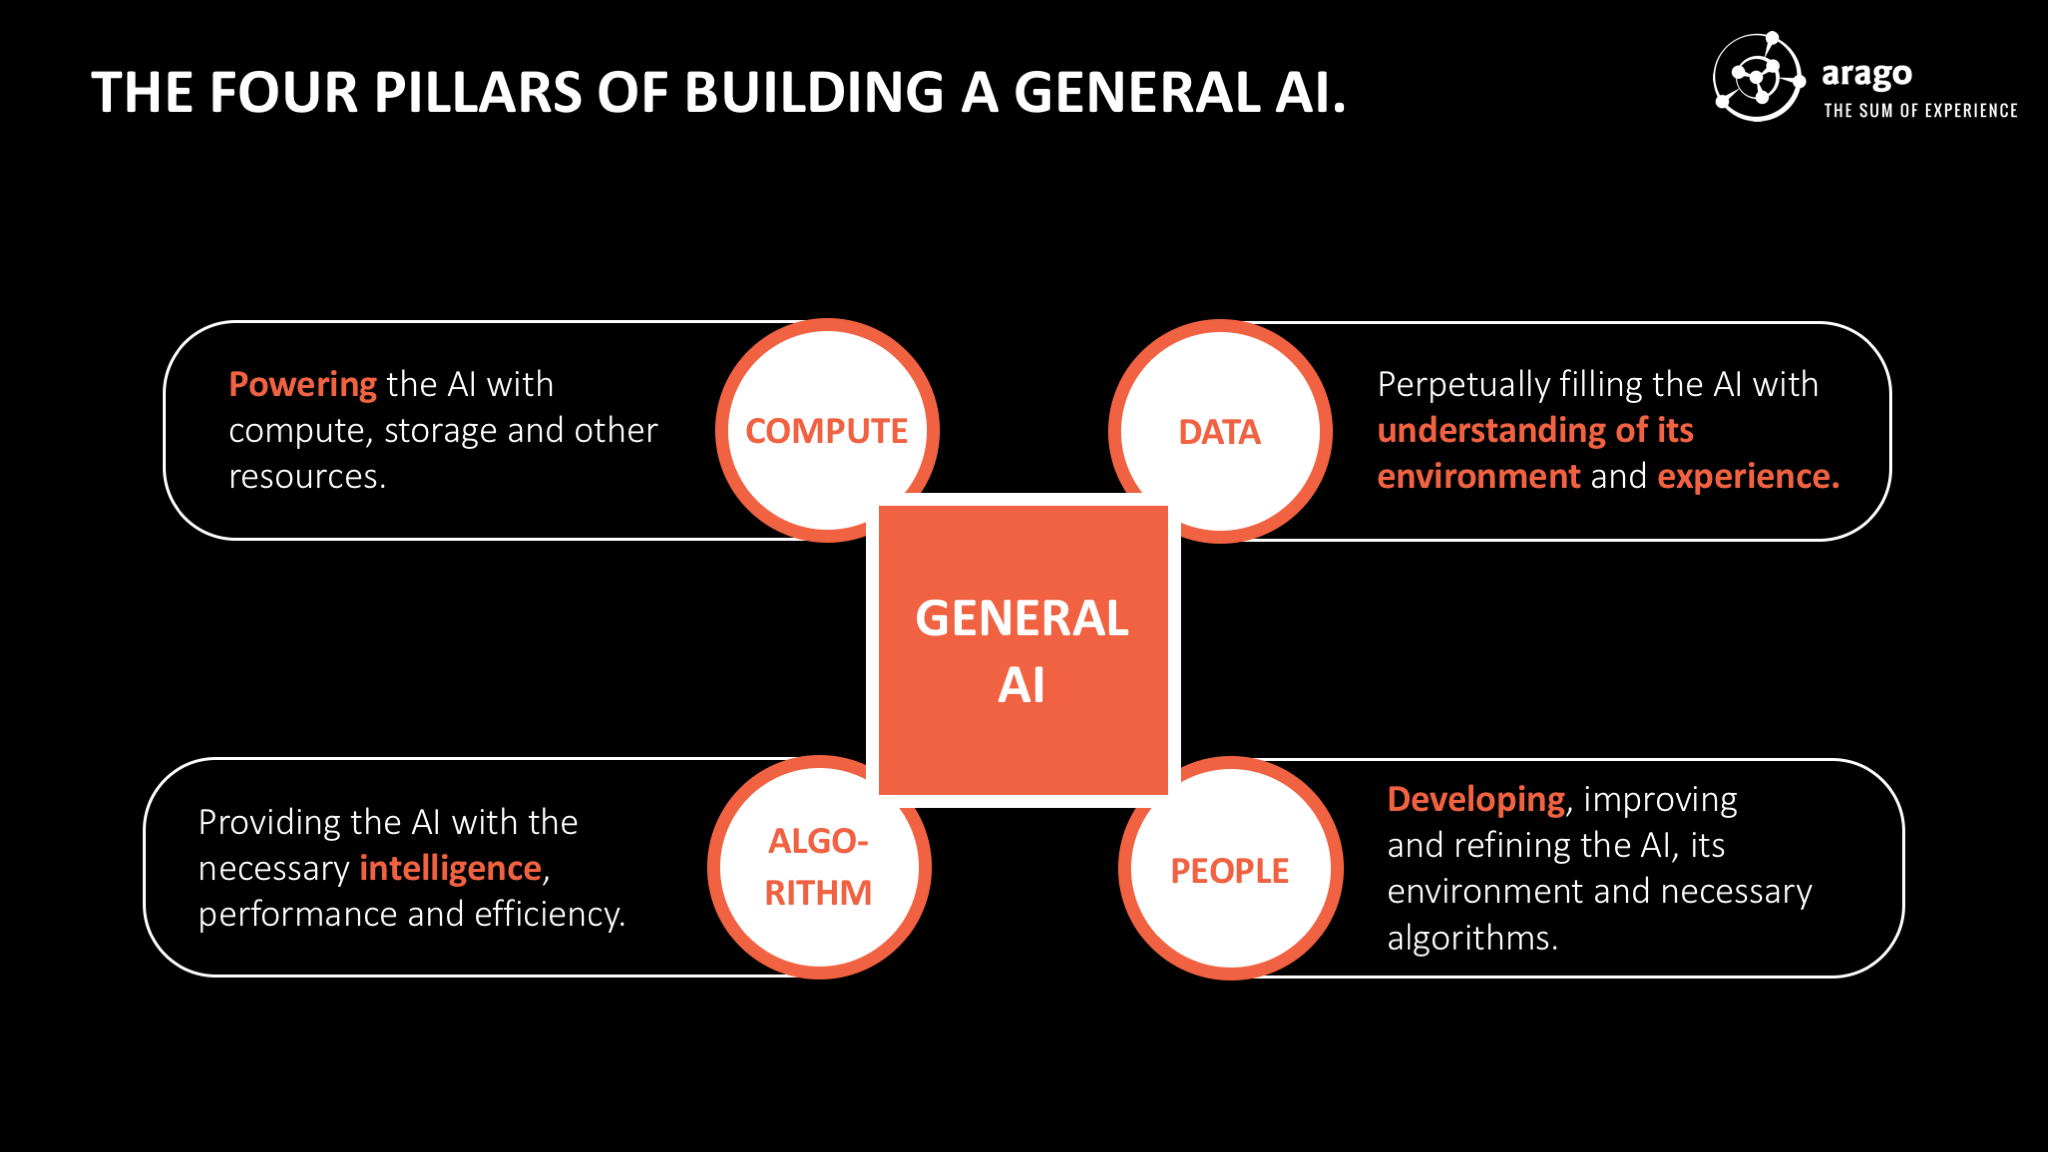 Figure: The Four Pillars of Building a General AI.